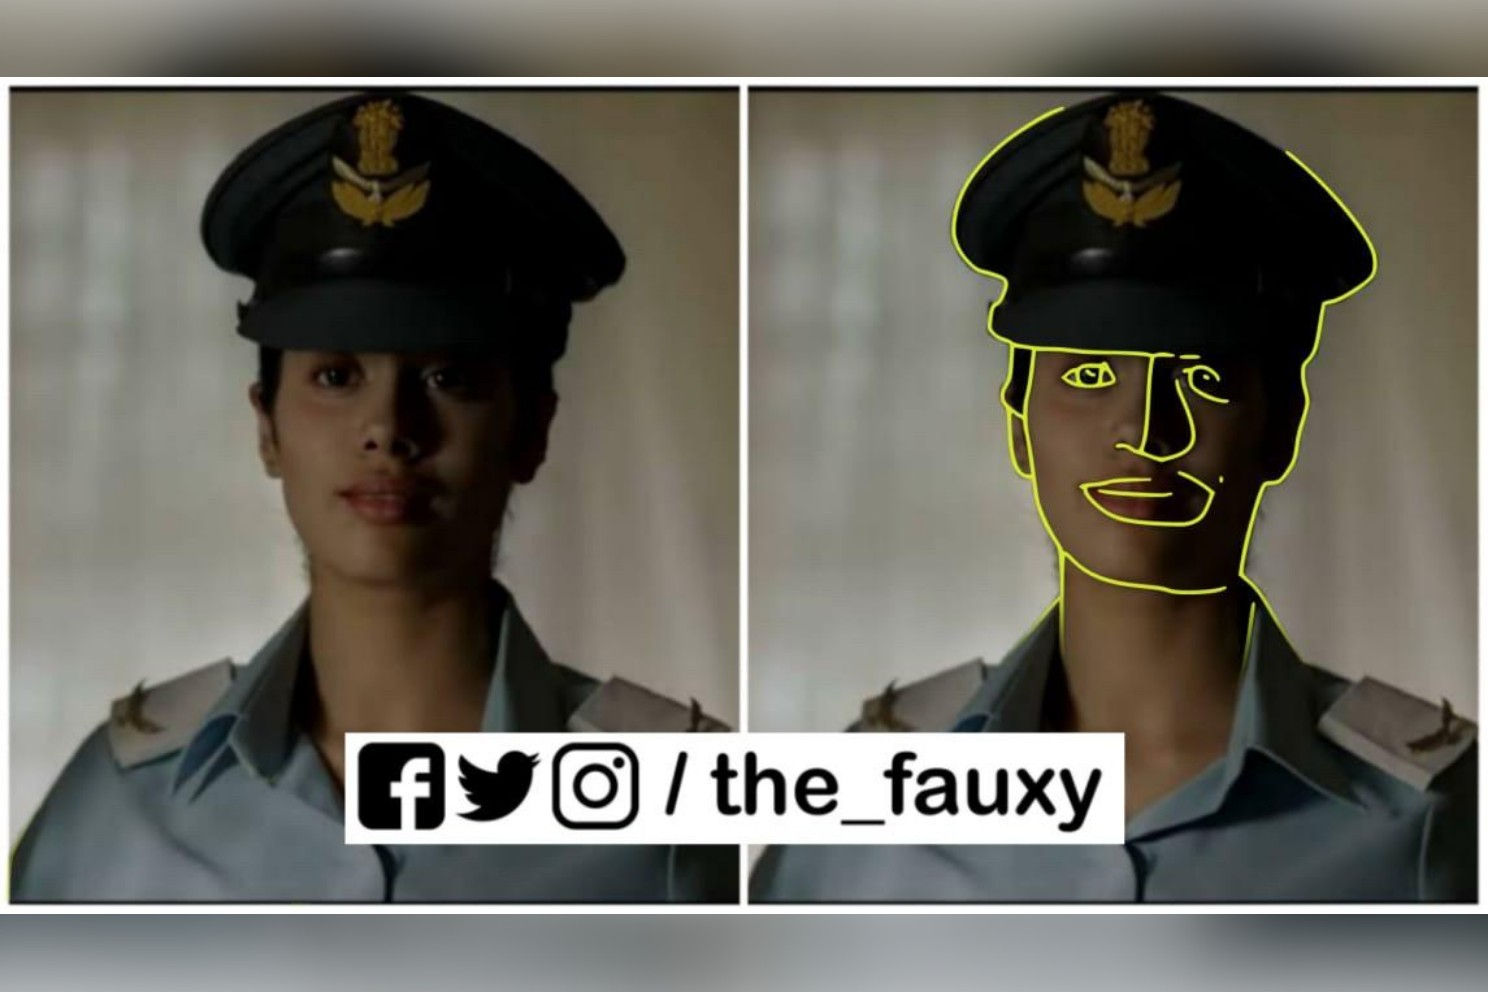 Editors To Use Vfx For Making Jhanvi Kapoor Look More Expressive In Her Next Movie Gunjan Saxena The Fauxy